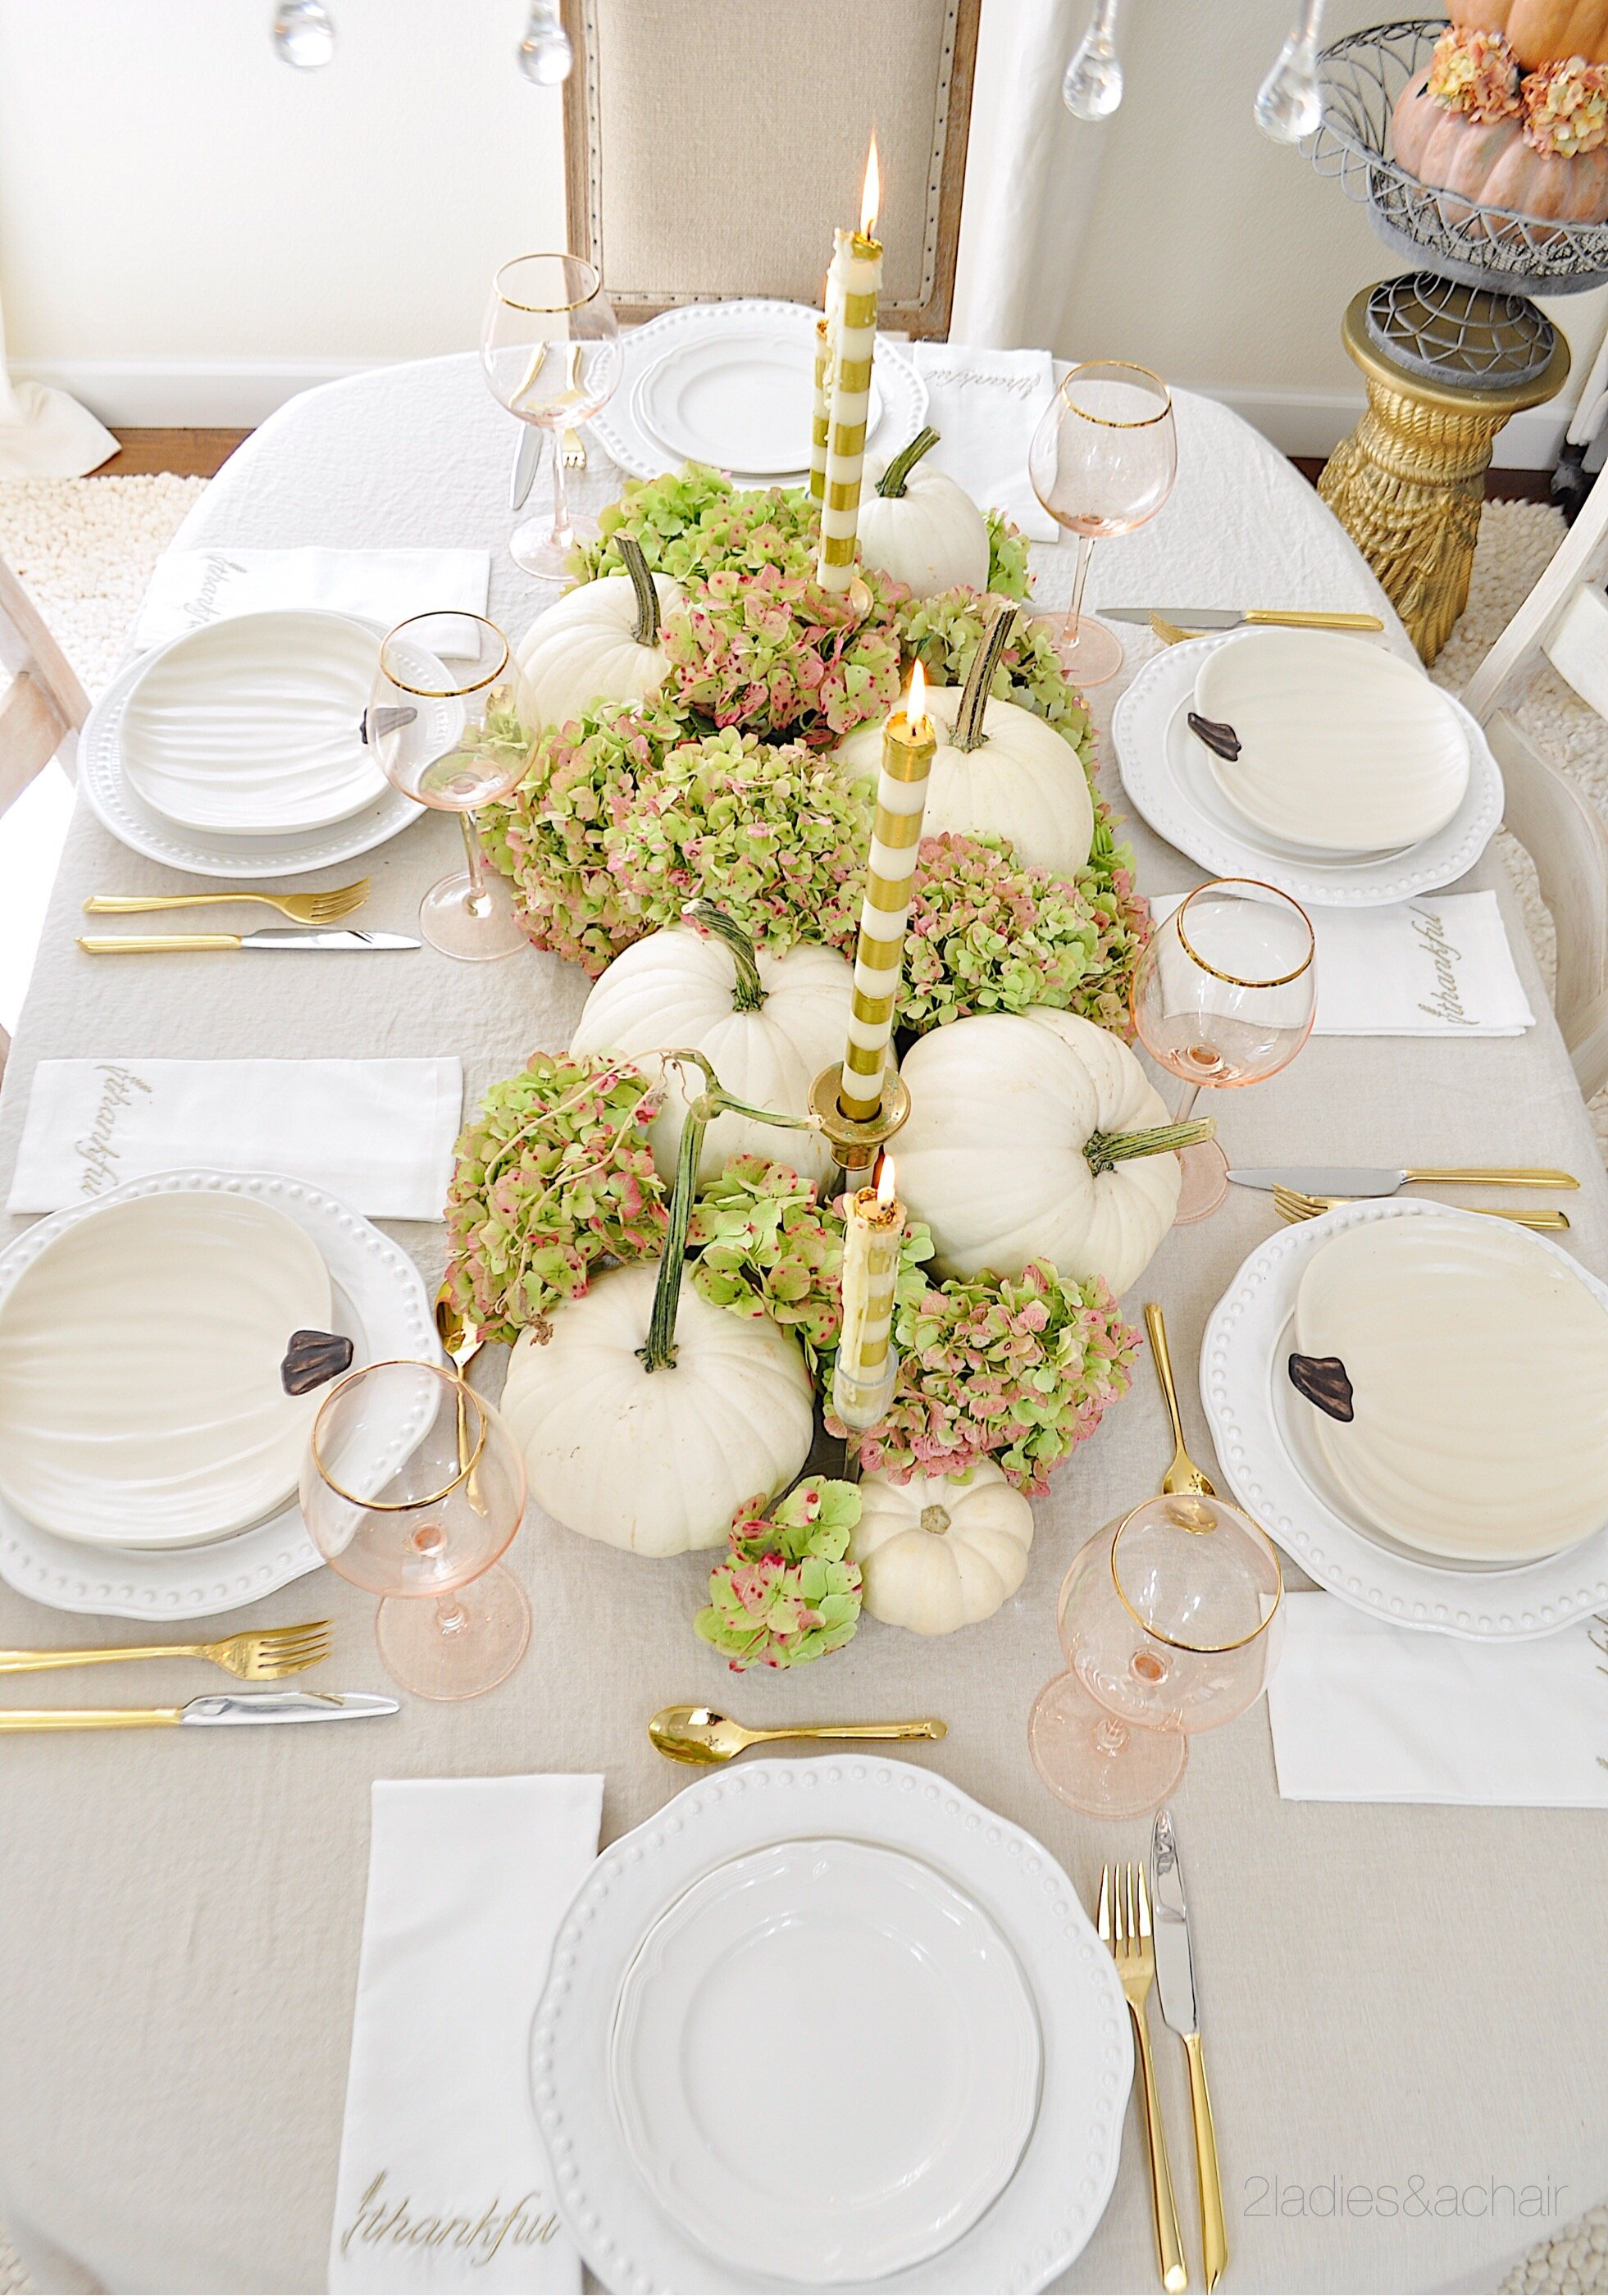 thanksgiving table IMG_1482.JPG